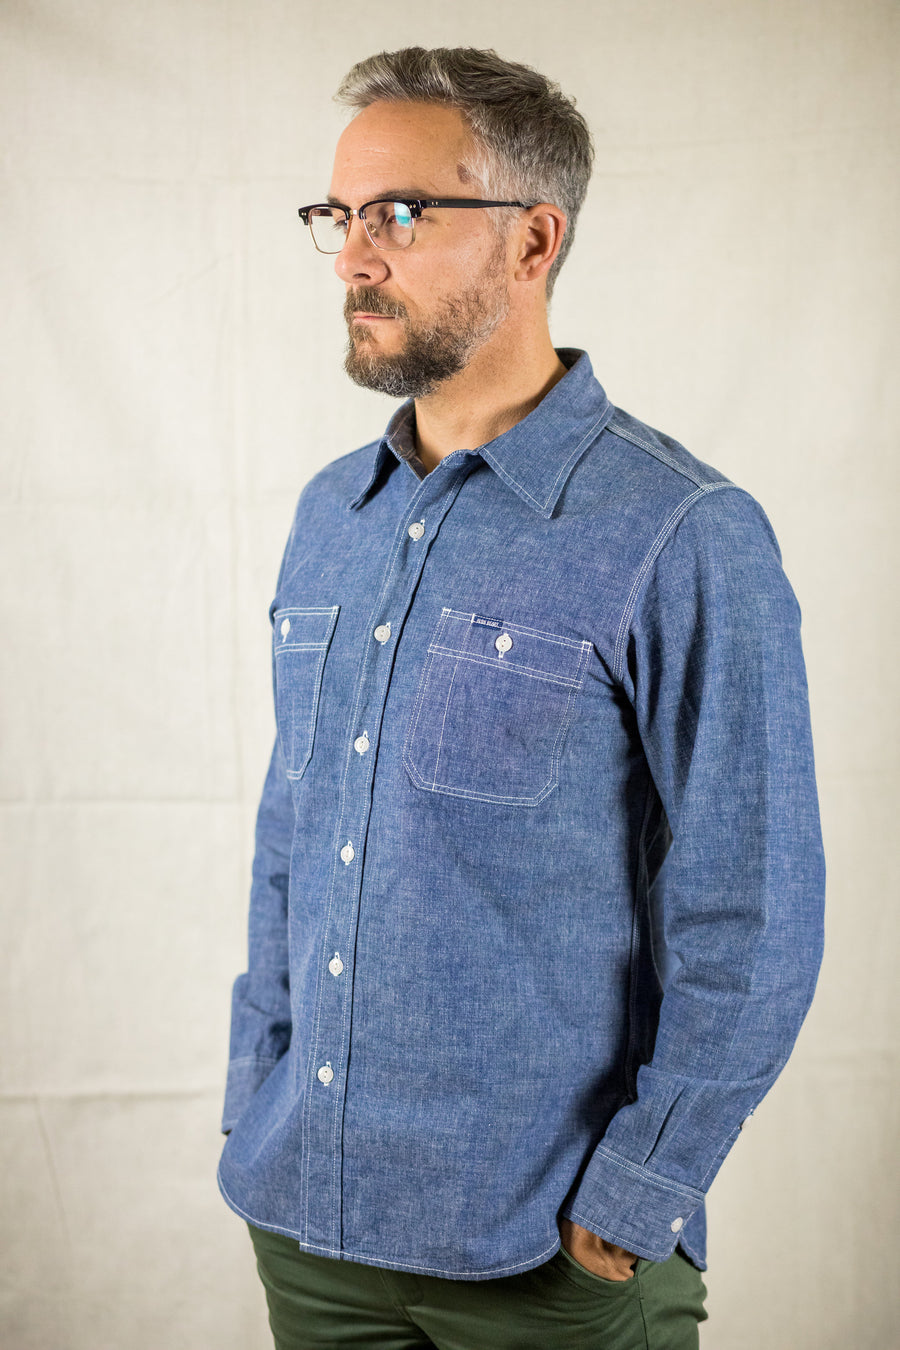 Iron Heart IHSH-21-ind - Indigo 10oz Selvedge Chambray Work Shirt - Franklin & Poe